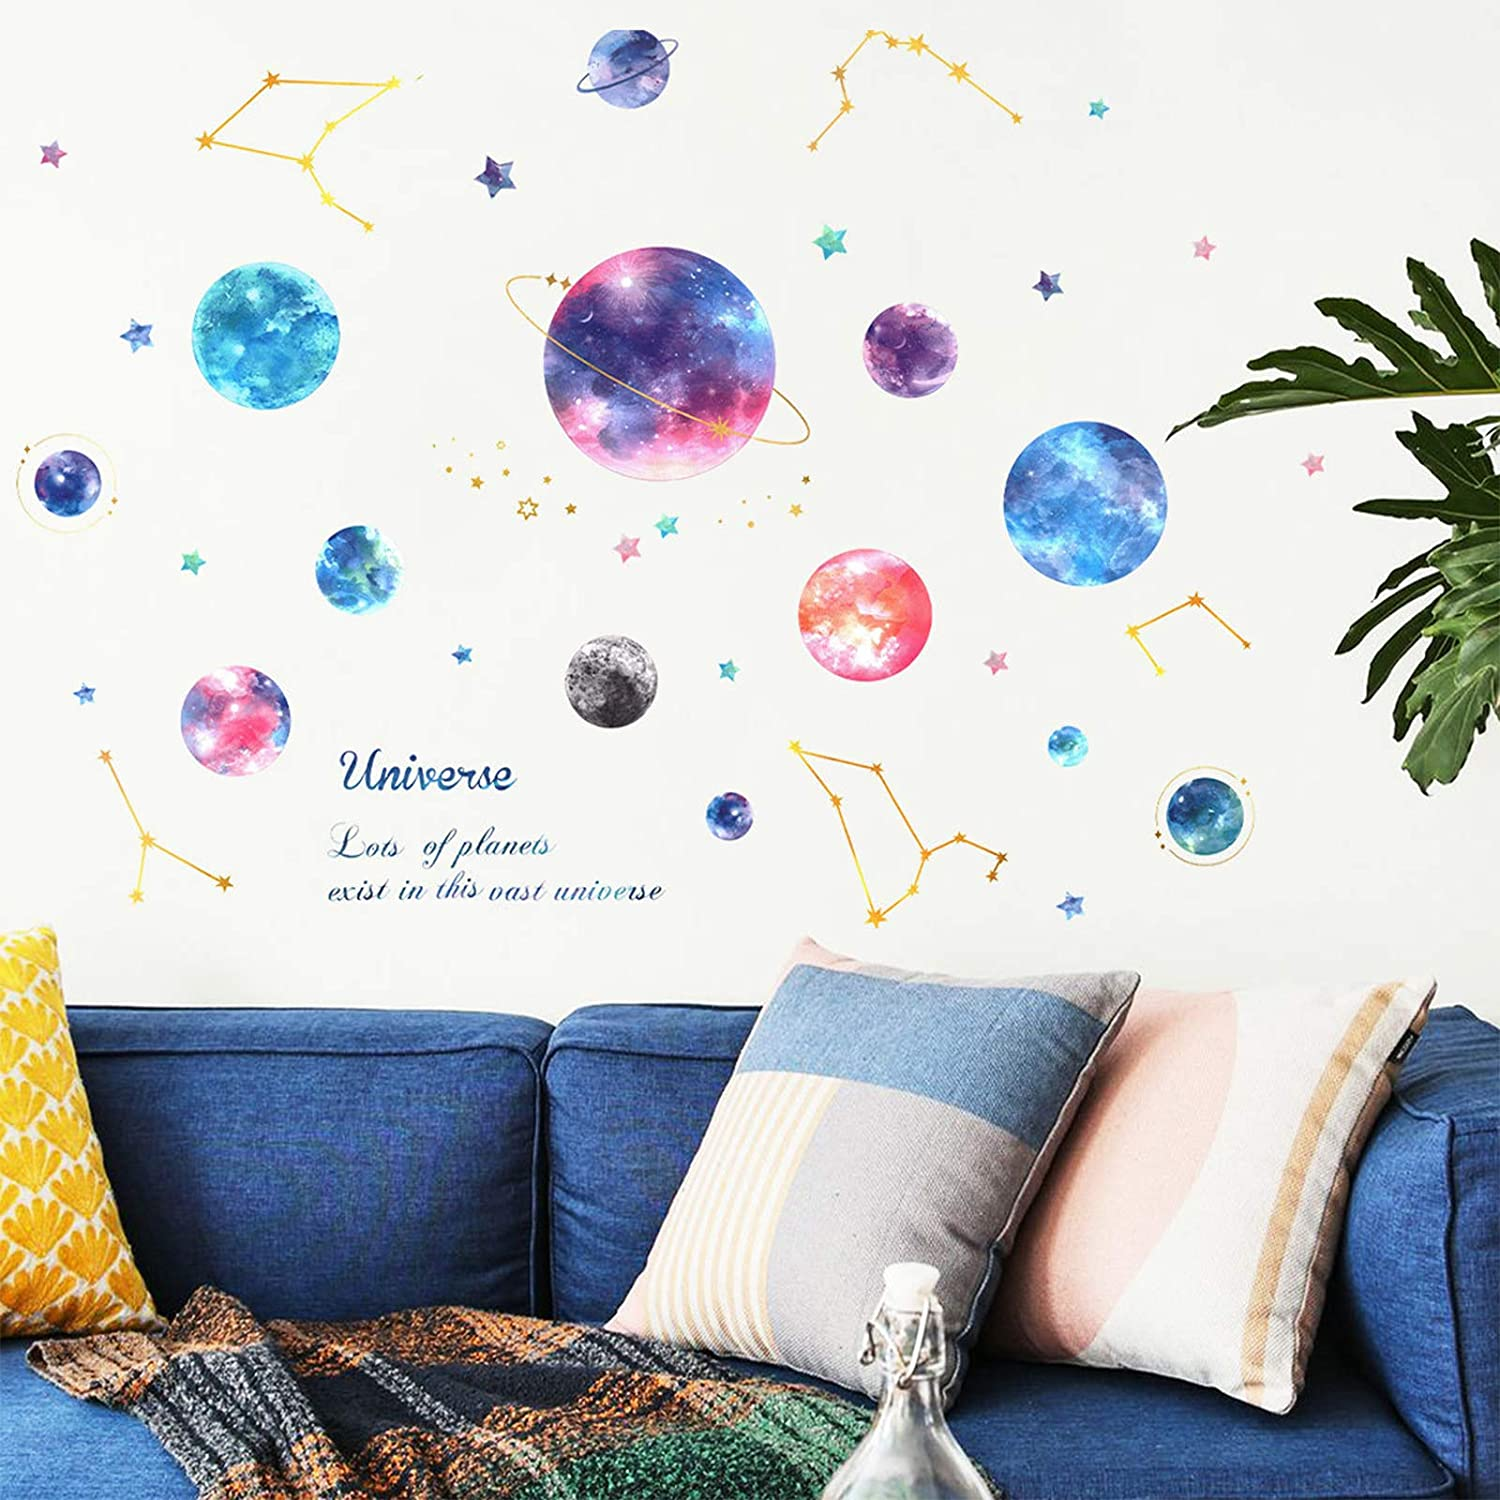 Planets in The Space Kids Wall Stickers Watercolor Space Planet Star Constellation Wall Decals, DILIBRA Peel and Stick Removable DIY Solar System Wall Stickers for Kids Nursery BedroomLiving Room